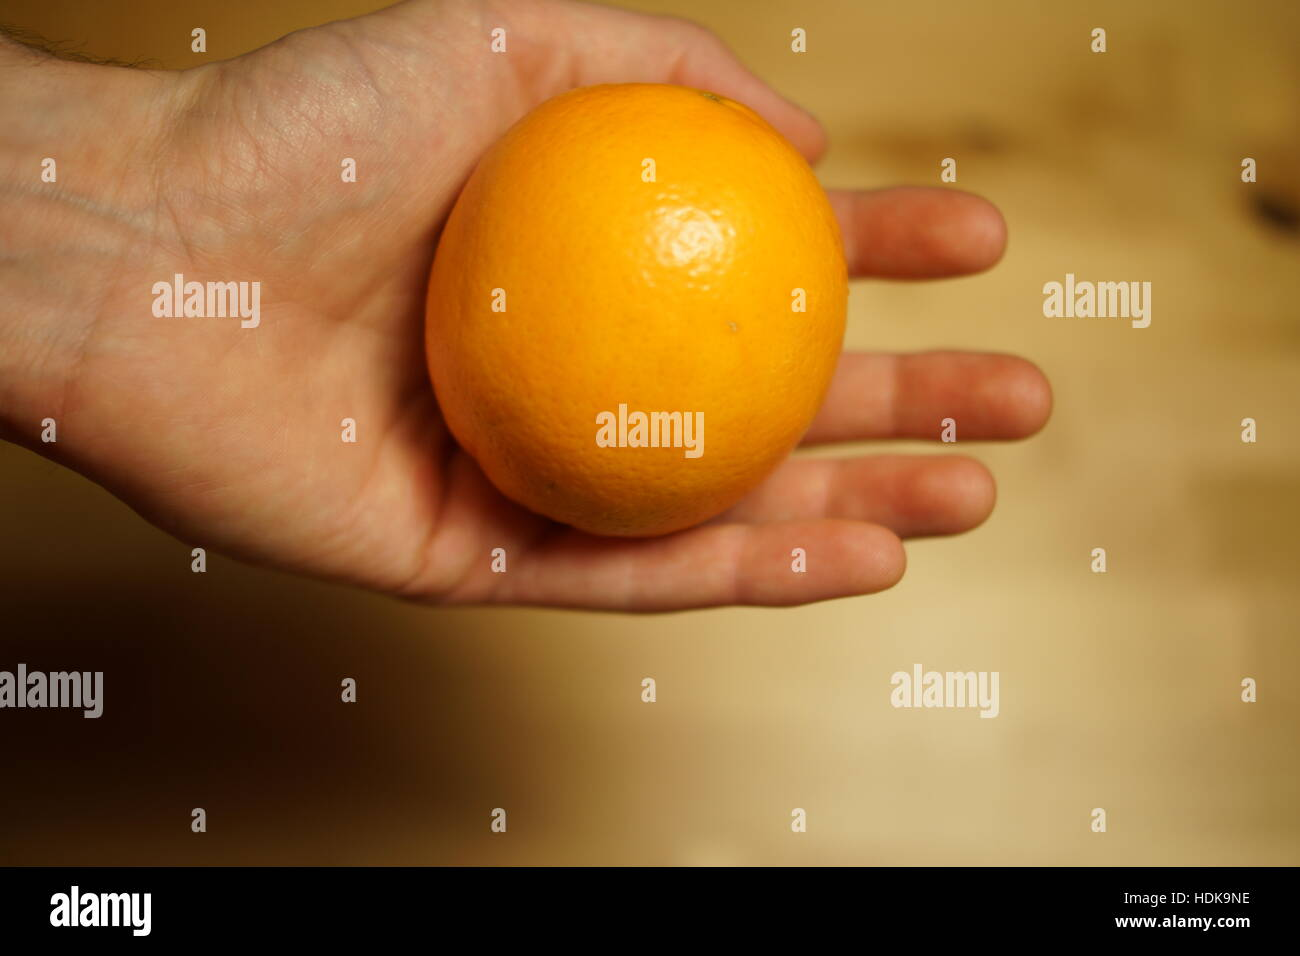 Orange in a hand - Stock Image